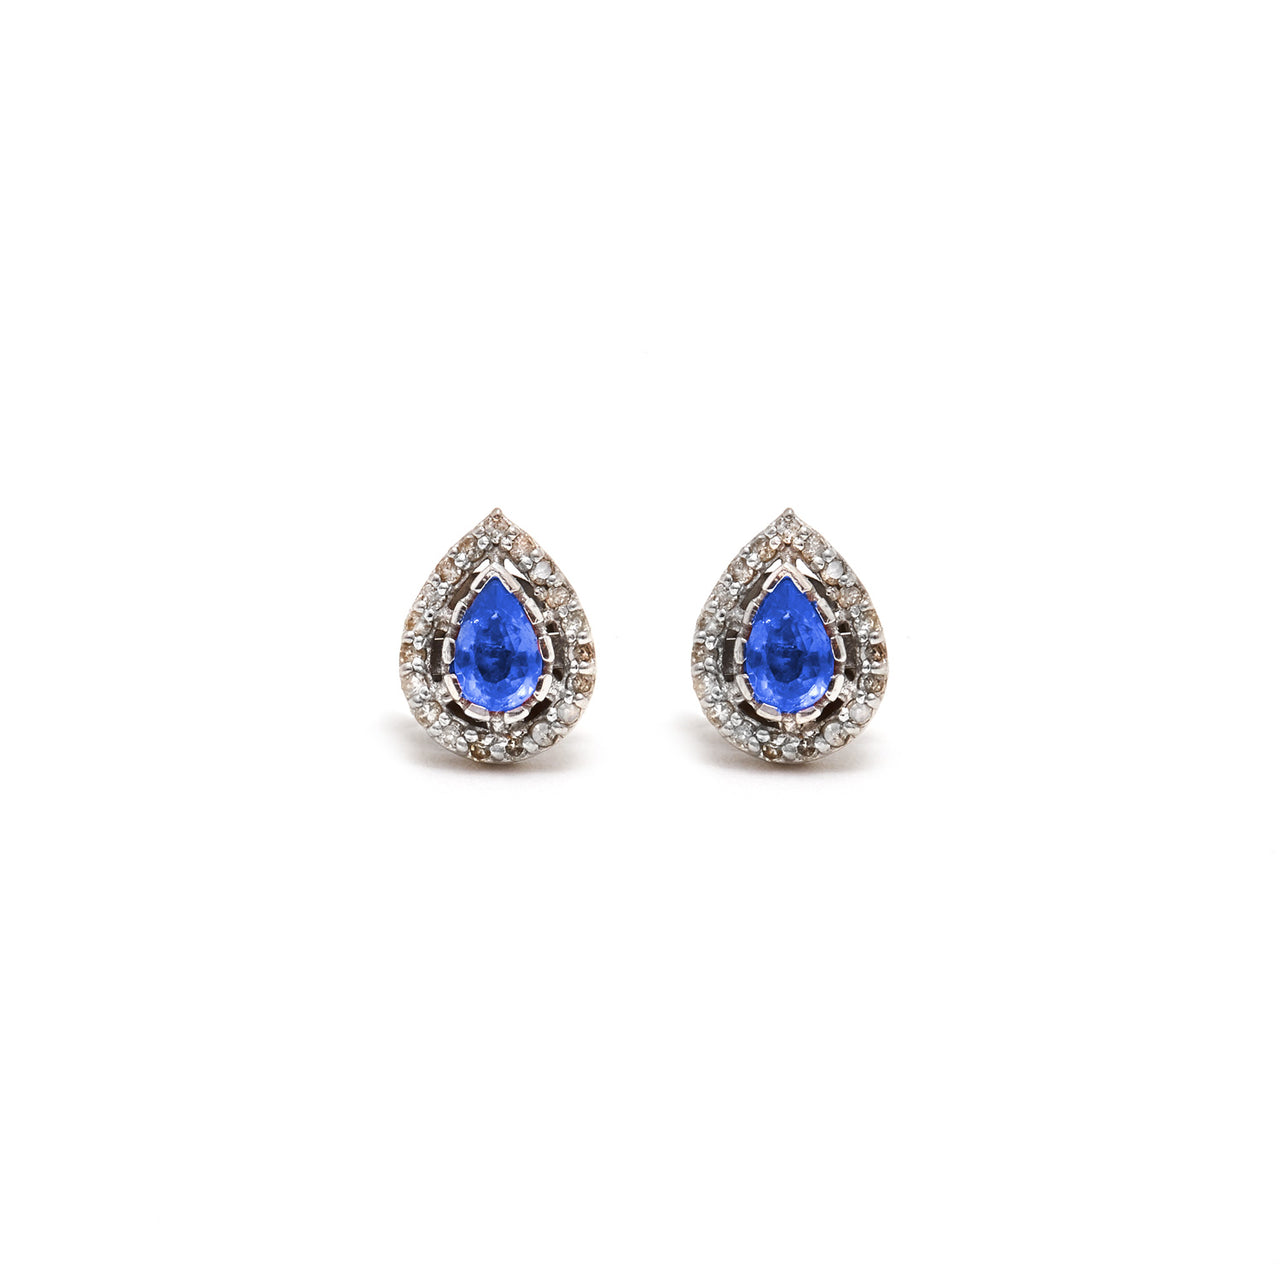 Jaipur Atelier Tanzanite Diamond Tear Drop Earrings